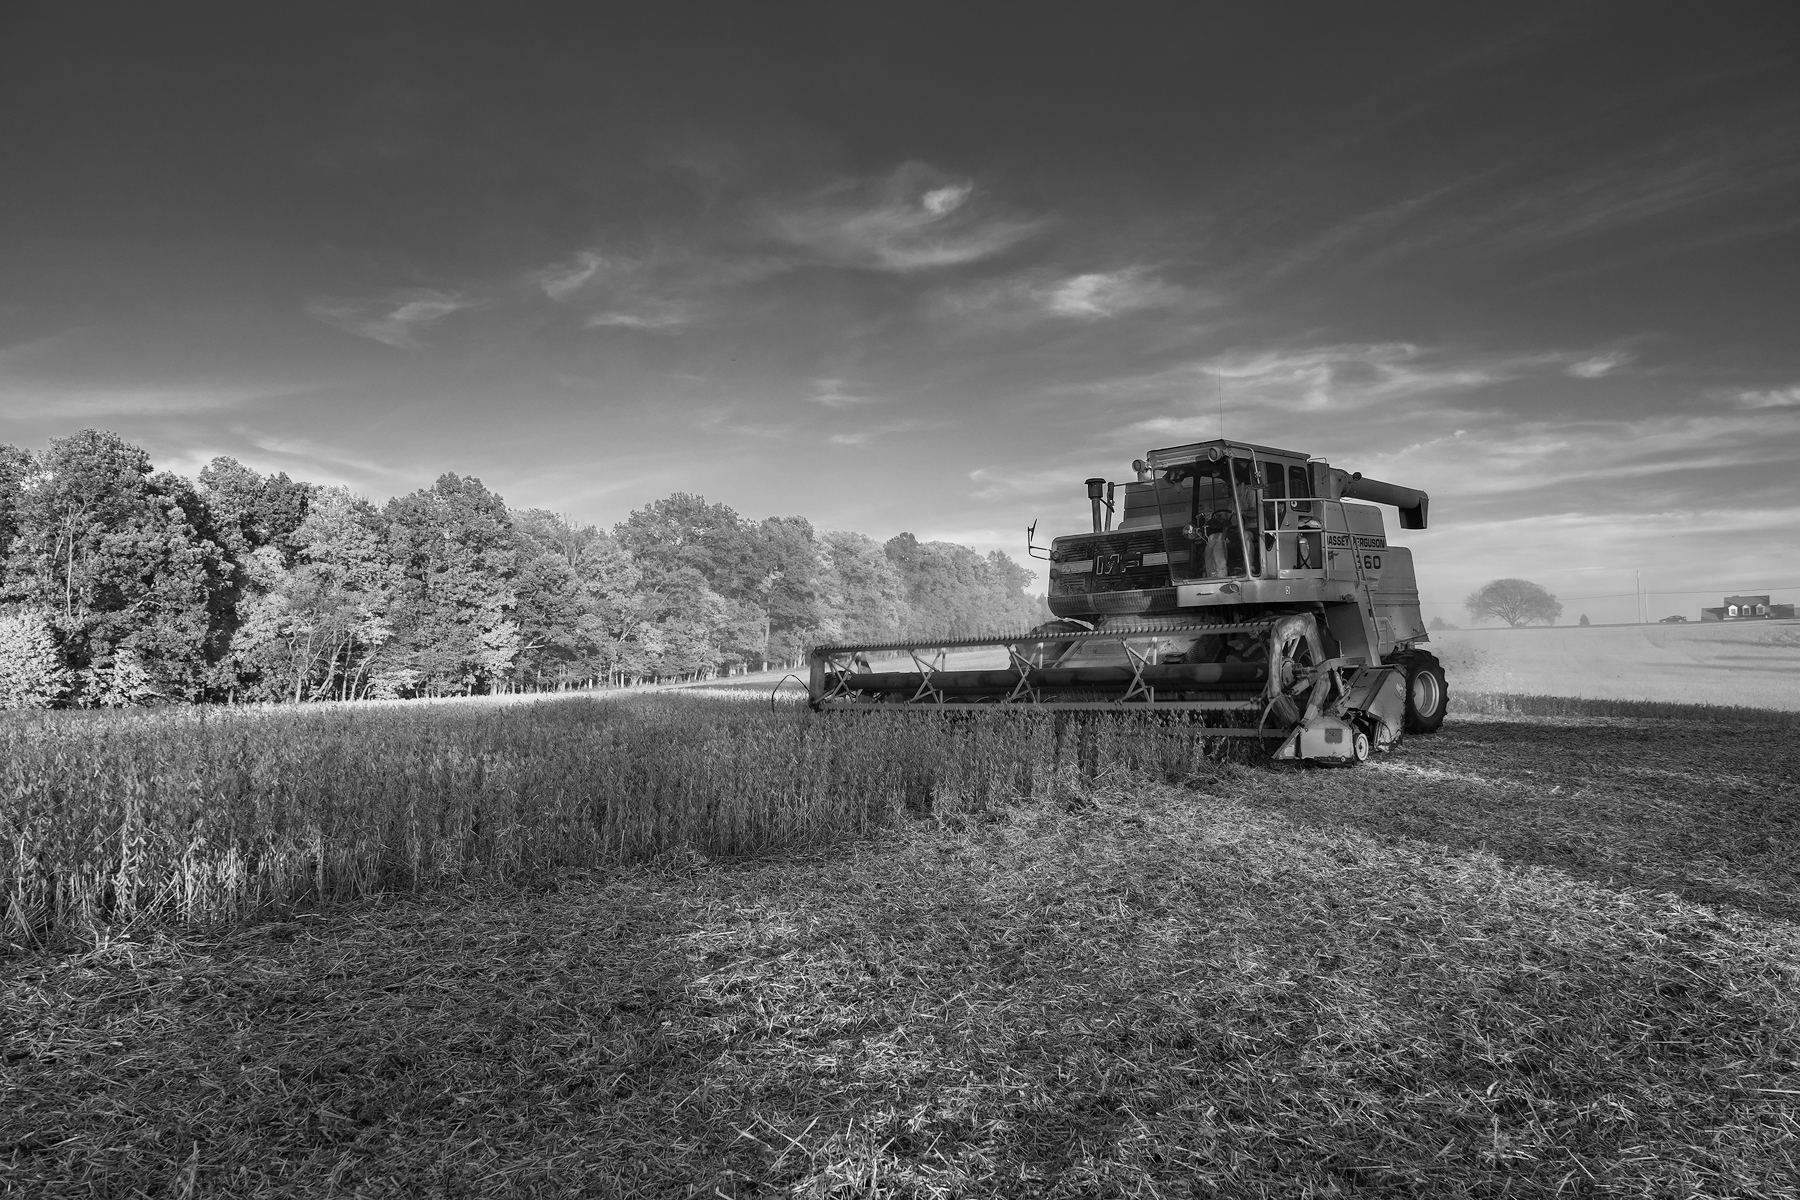 Long shadows and clouds frame a combine cutting soybeans. Fuji X-Pro 2 and a Fujinon XF16-55mm at 16mm. Image exposed at ISO 400 at f5.6 for 1/80 of a second.